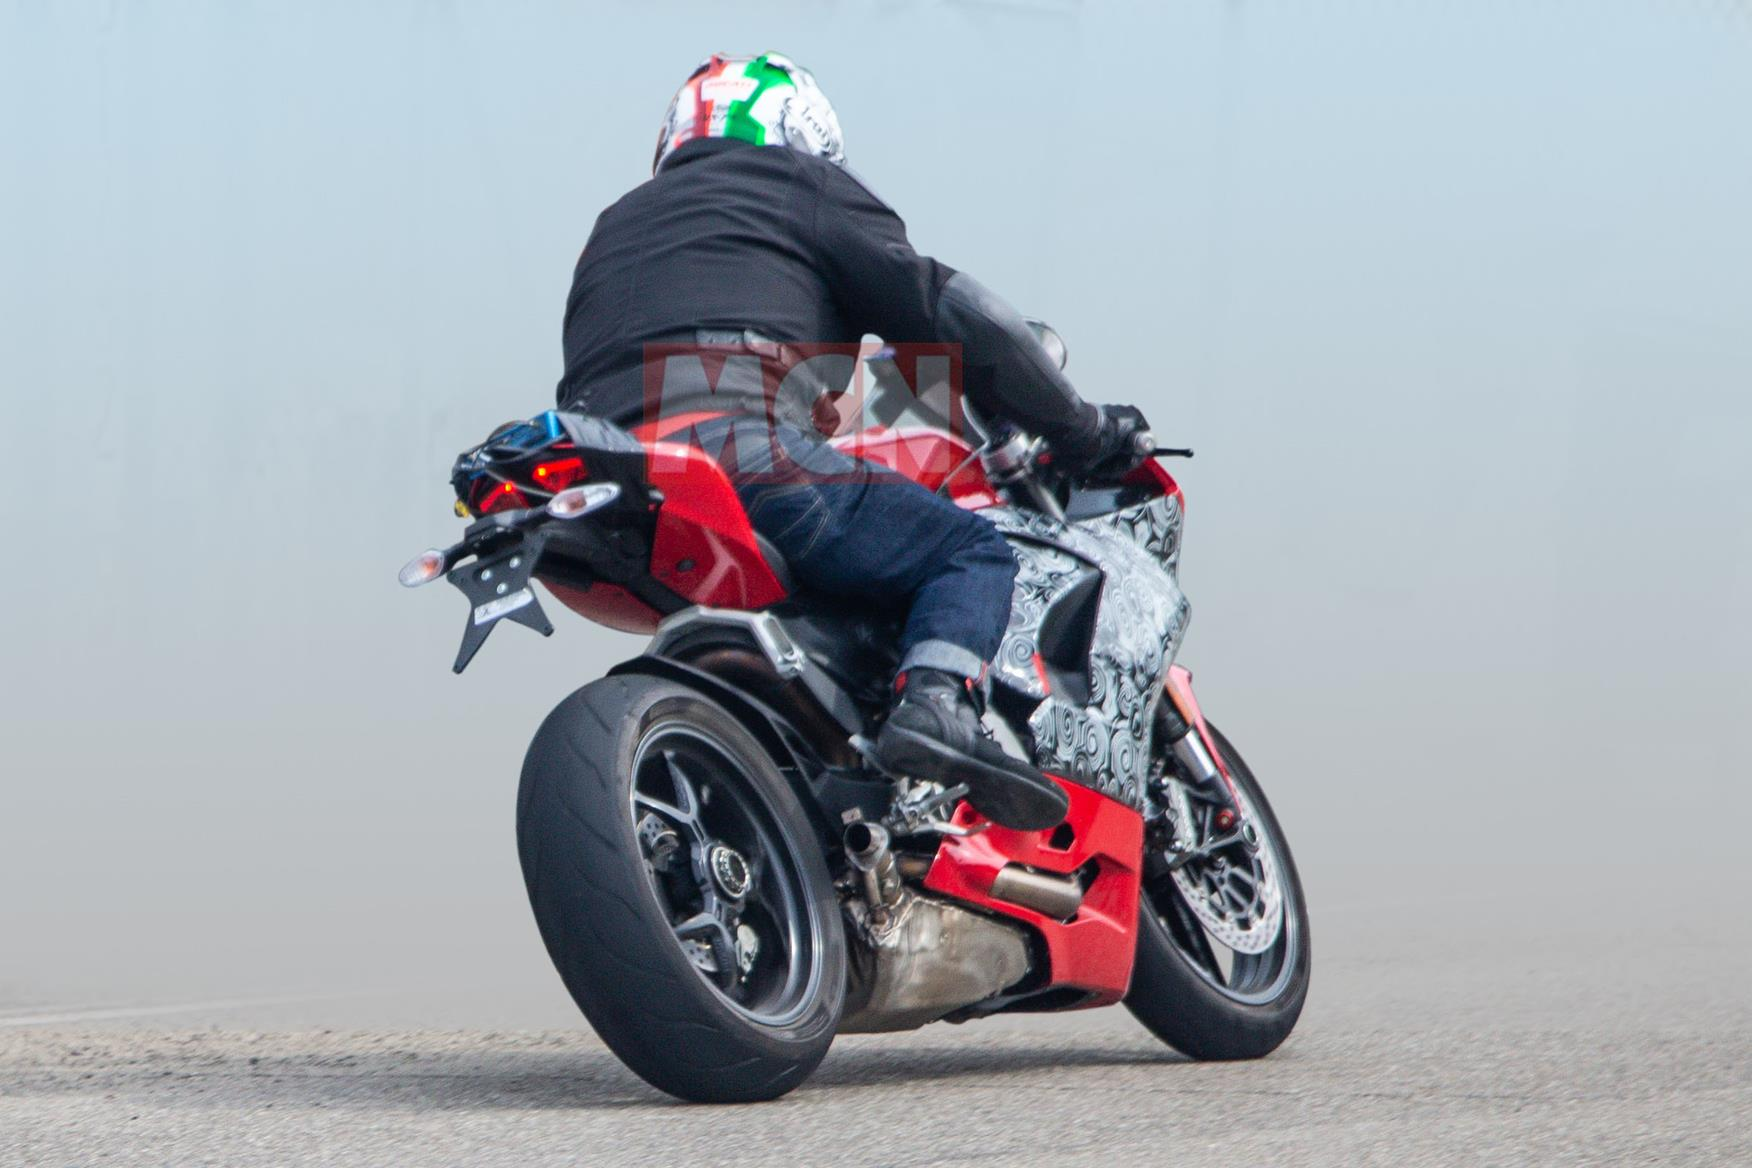 Ducati Panigale 959 spy shot rear